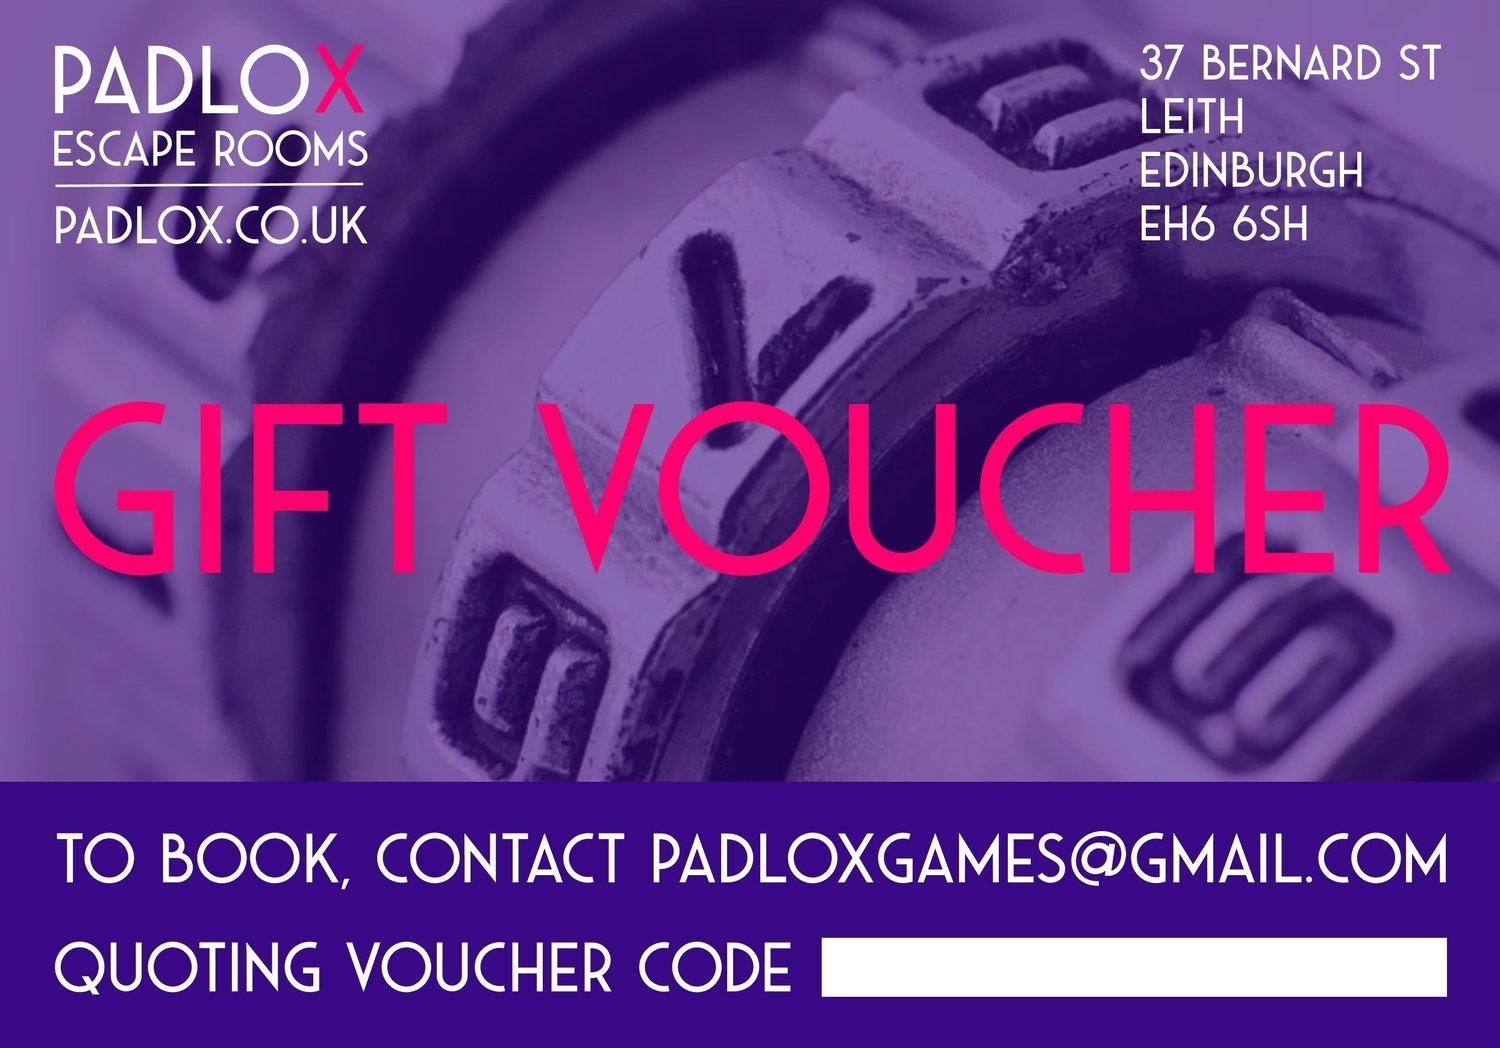 Gift Voucher (4-5 players)